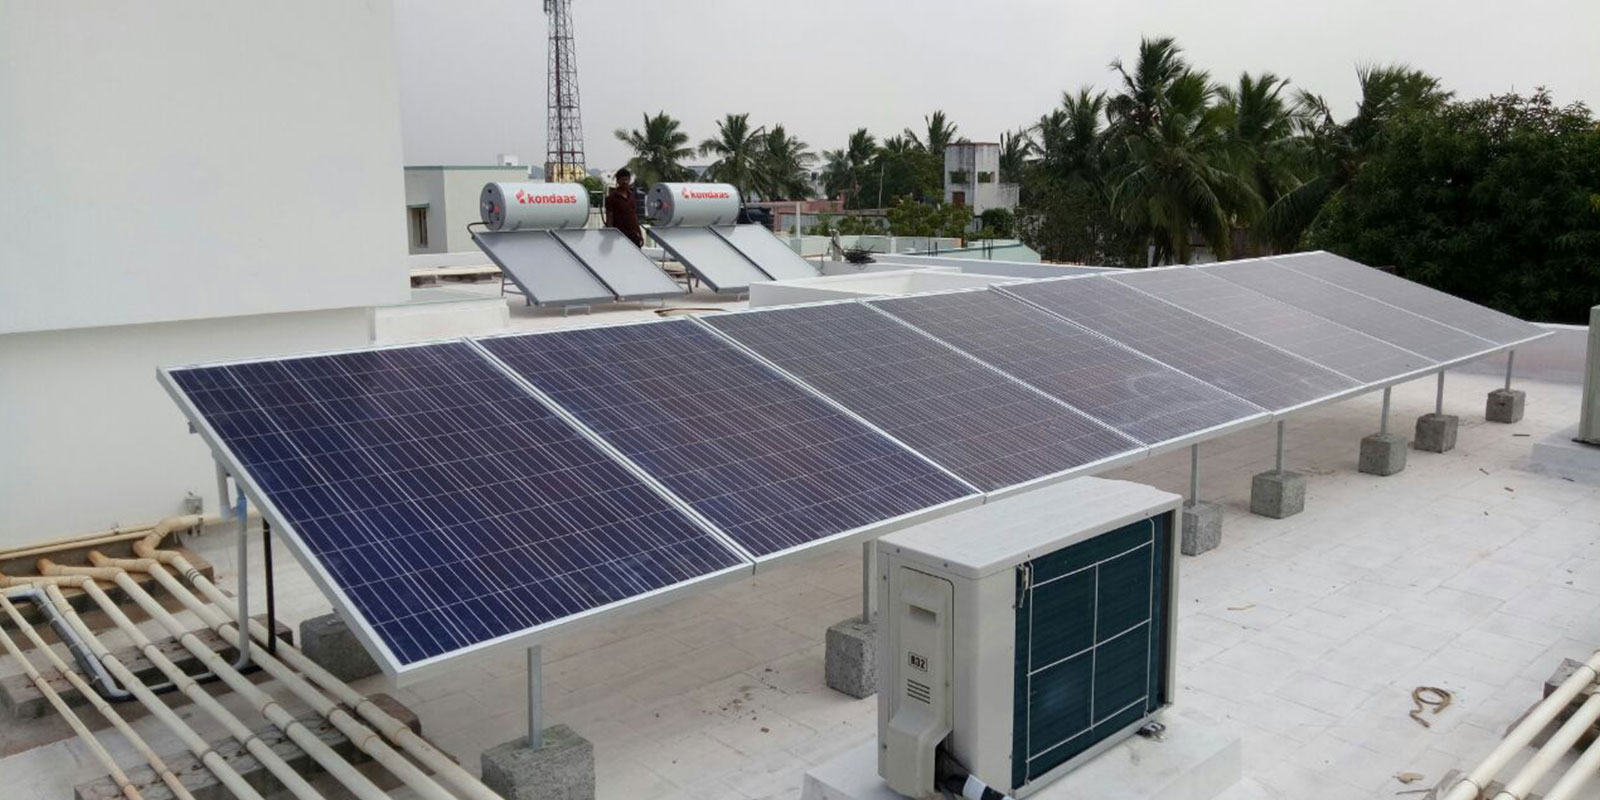 1kw 10kw Off Grid Solar Power Plant Price With Subsidy Coimbatore Panel System Wiring Diagram Offgrid Systems Chennai Tamil Nadu